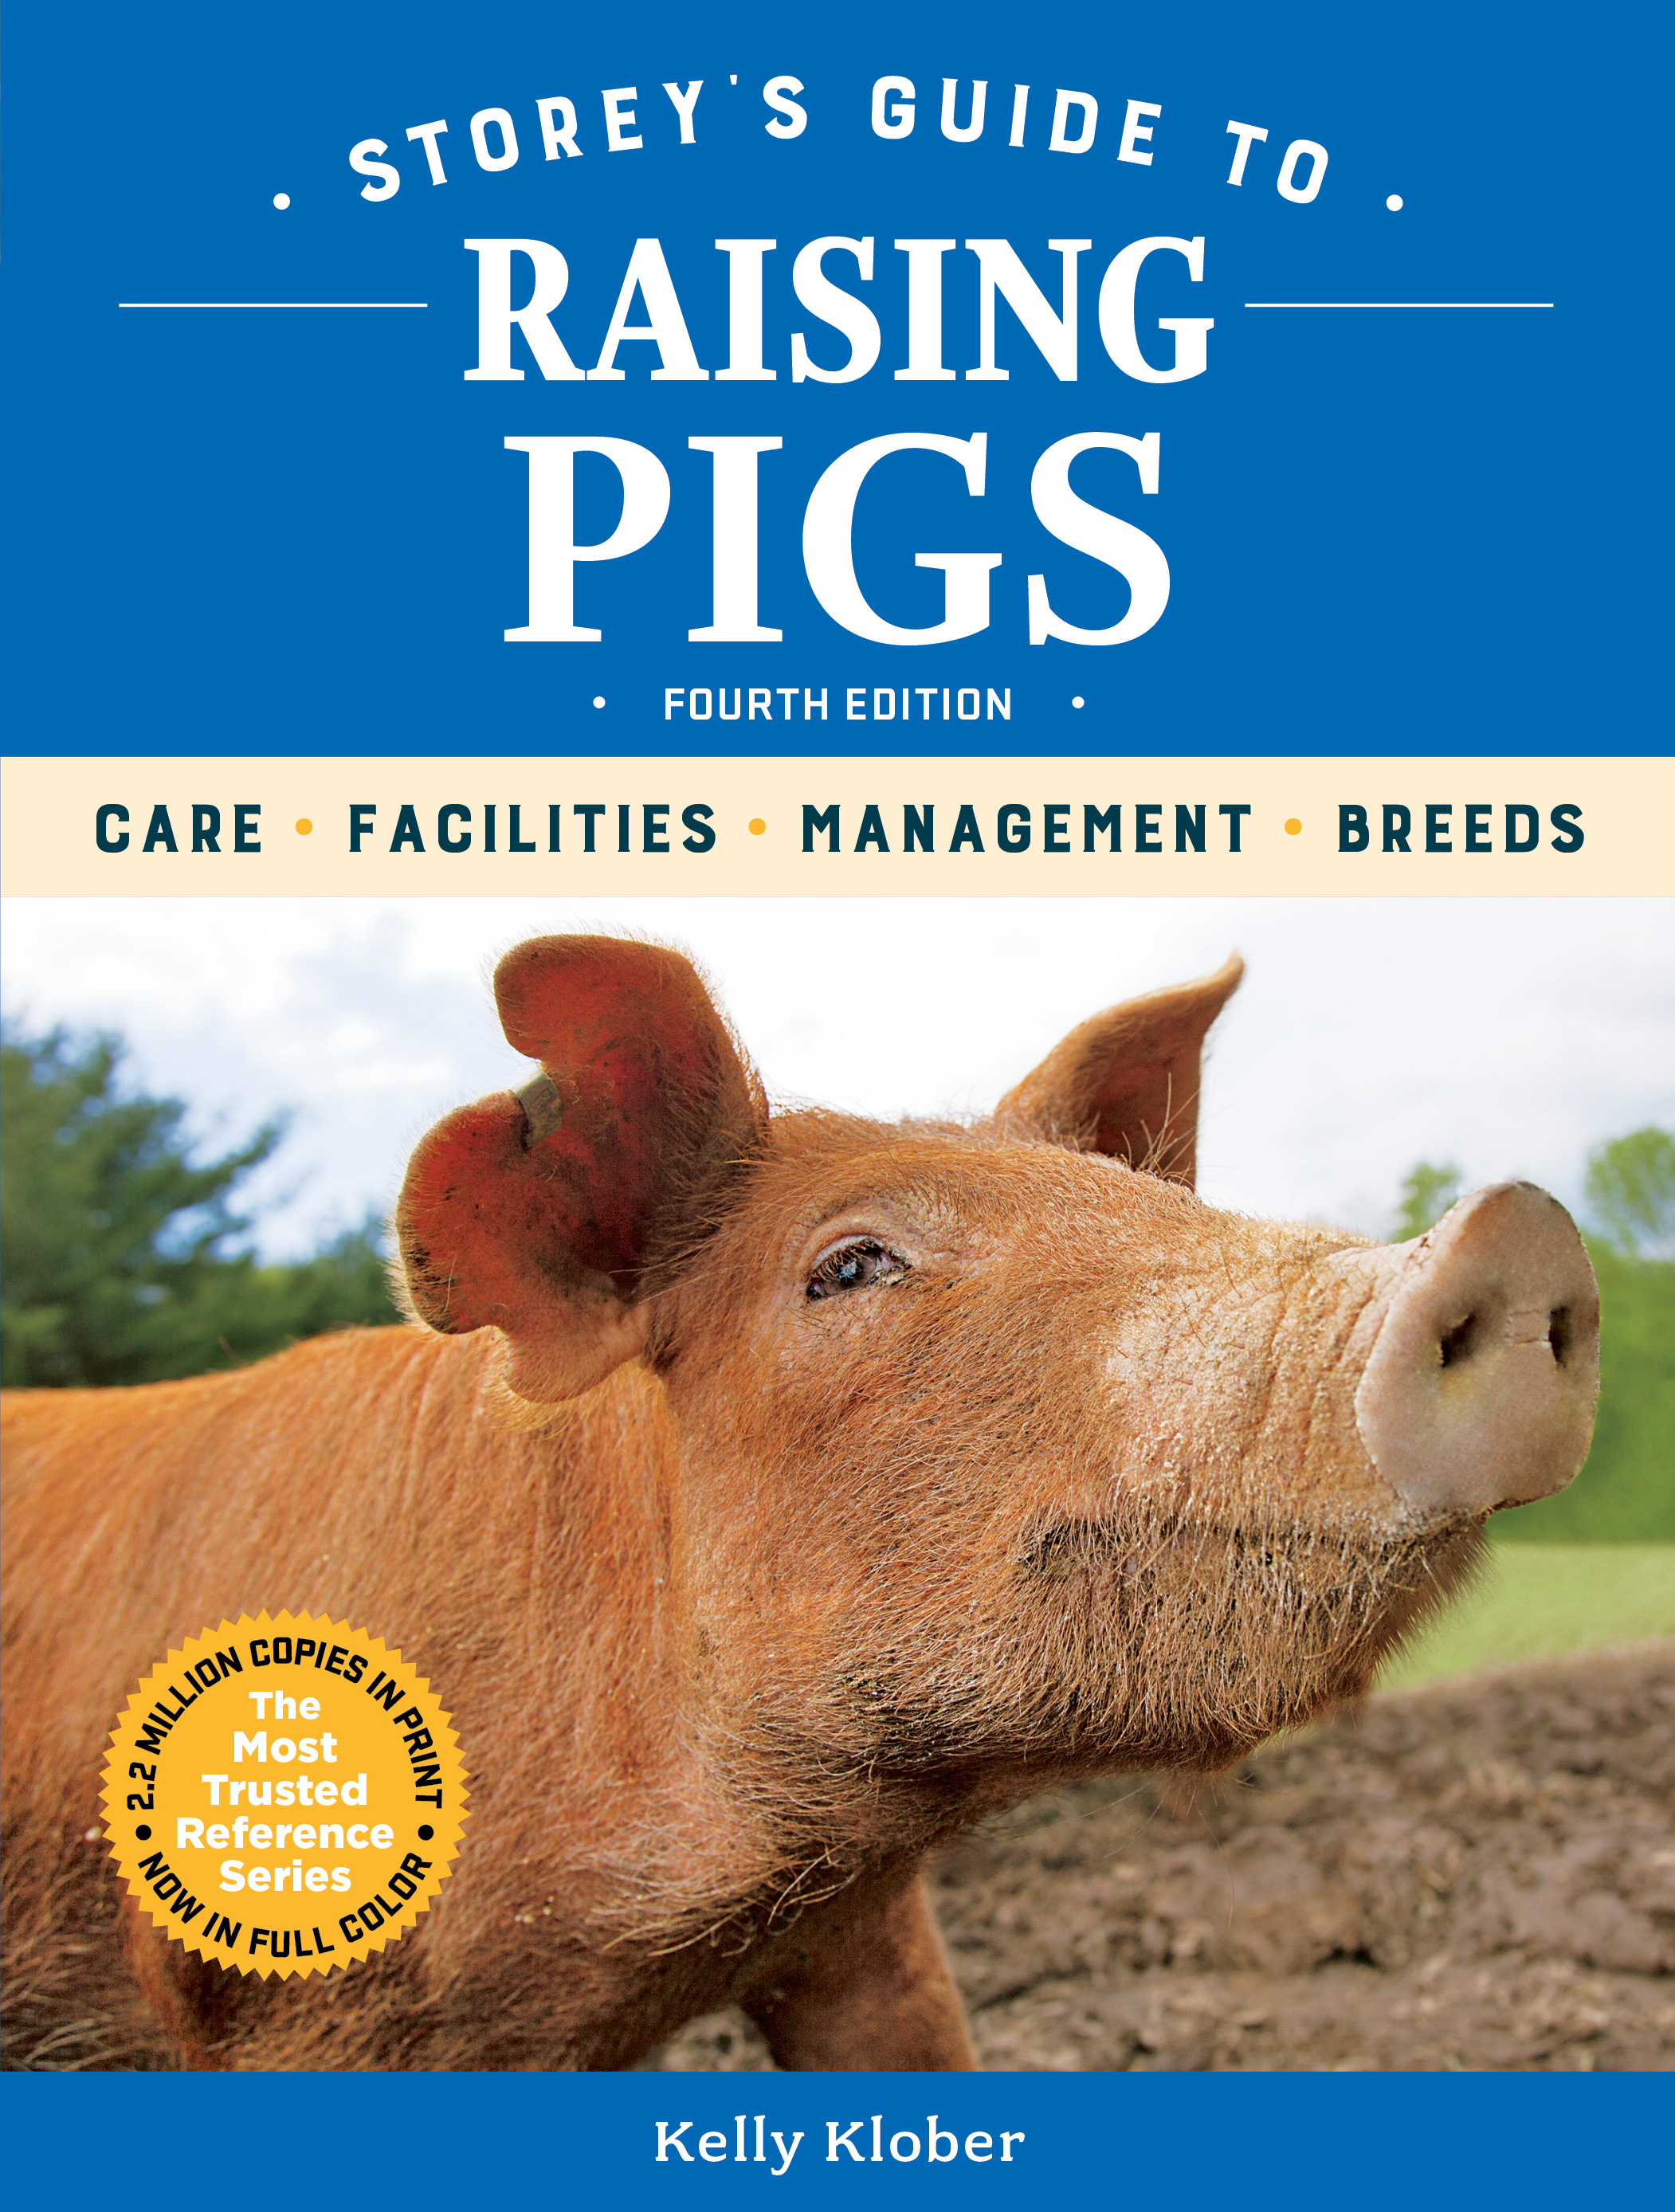 Storey's Guide to Raising Pigs, 4th Edition Care, Facilities, Management, Breeds - Kelly Klober